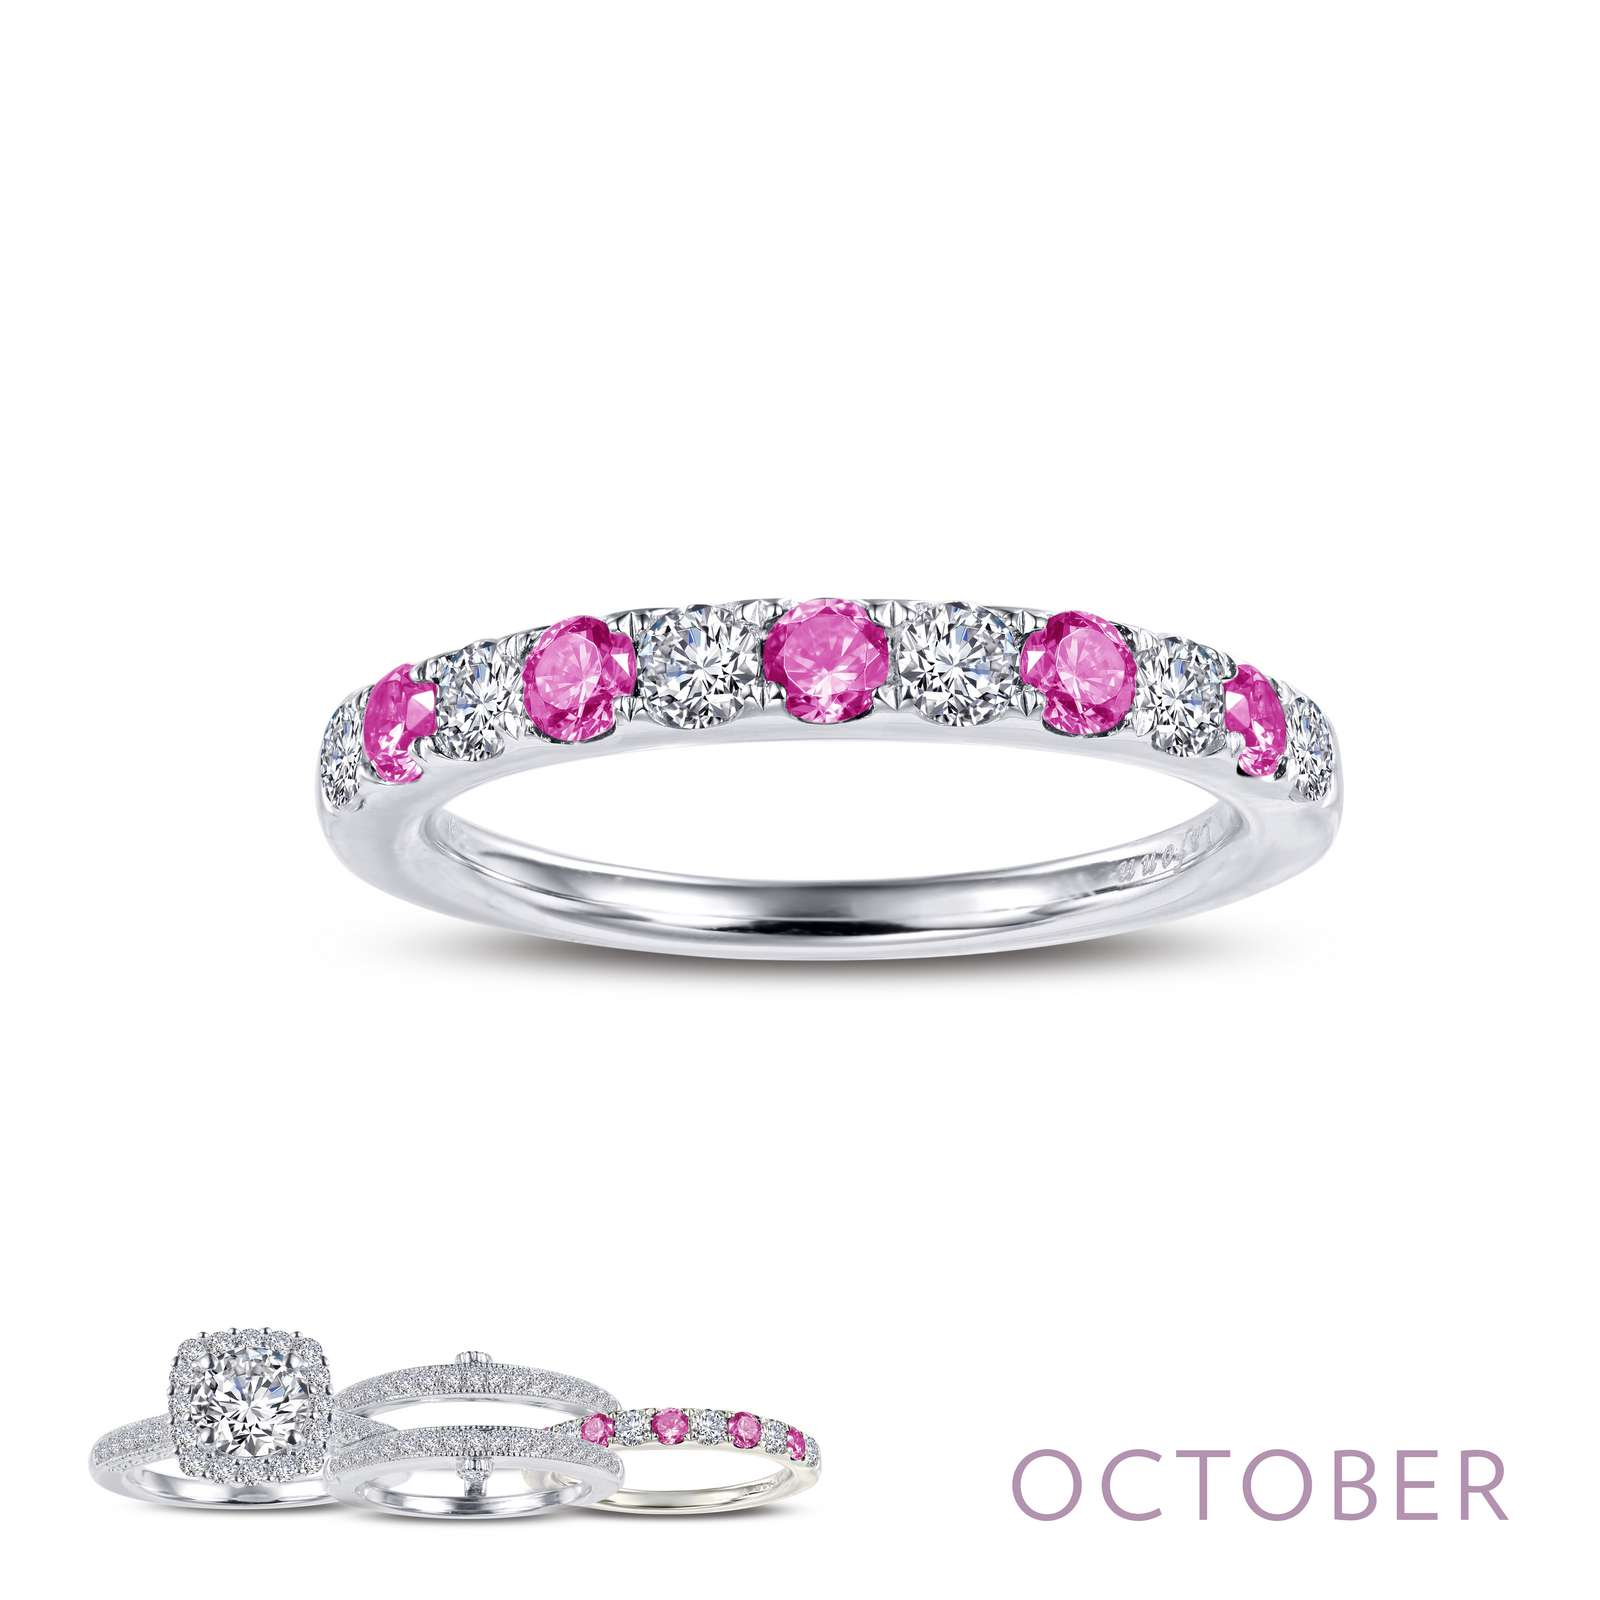 Birthstone OCTOBER Platinum Ring by Lafonn Jewelry